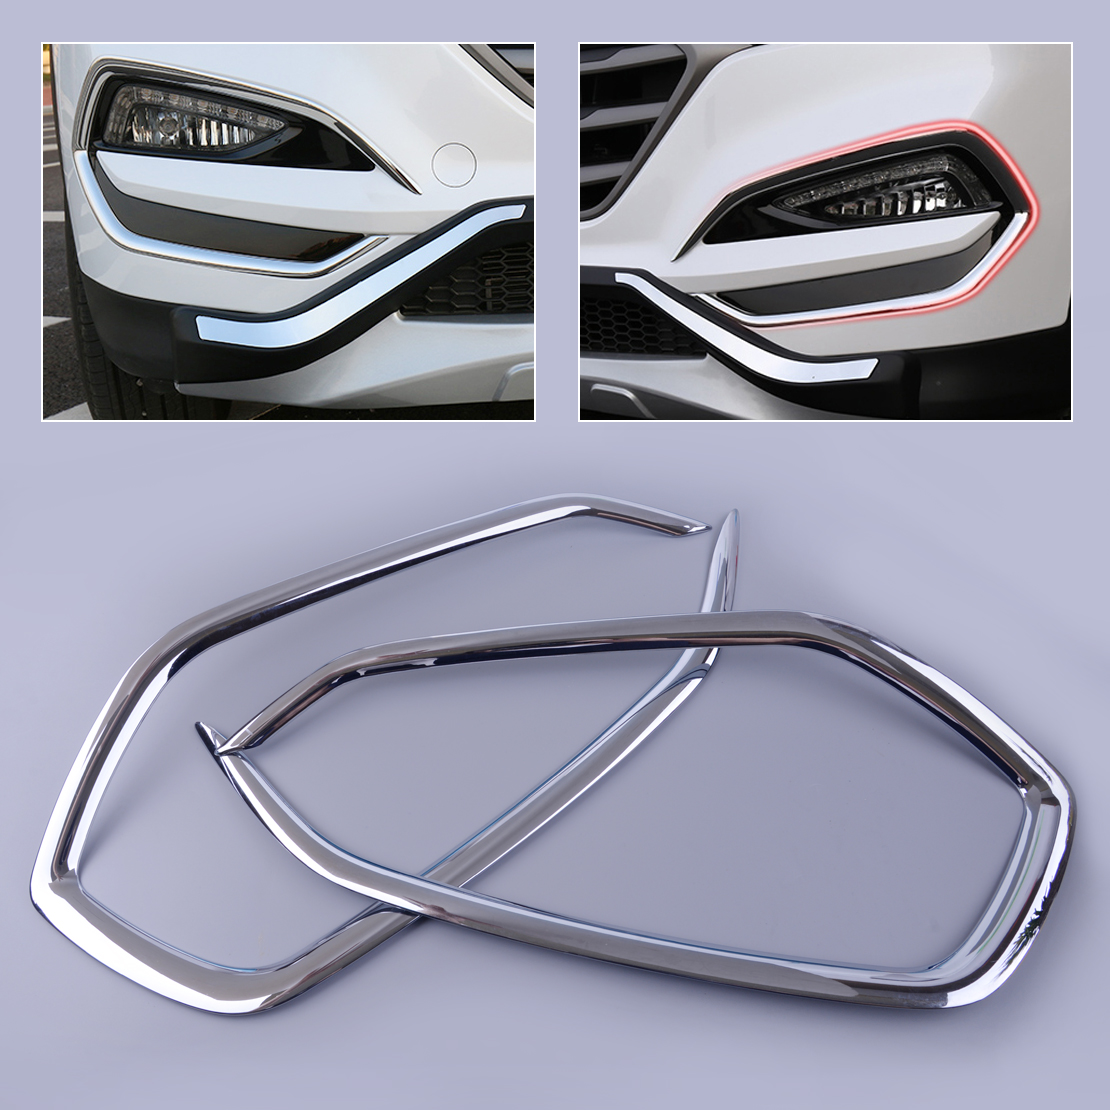 CITALL 1 Pair Silver ABS plastic Chrome Plated Front Fog Light Cover Trim Fit for Hyundai Tucson 2016 2017 2018 Car Styling(China)